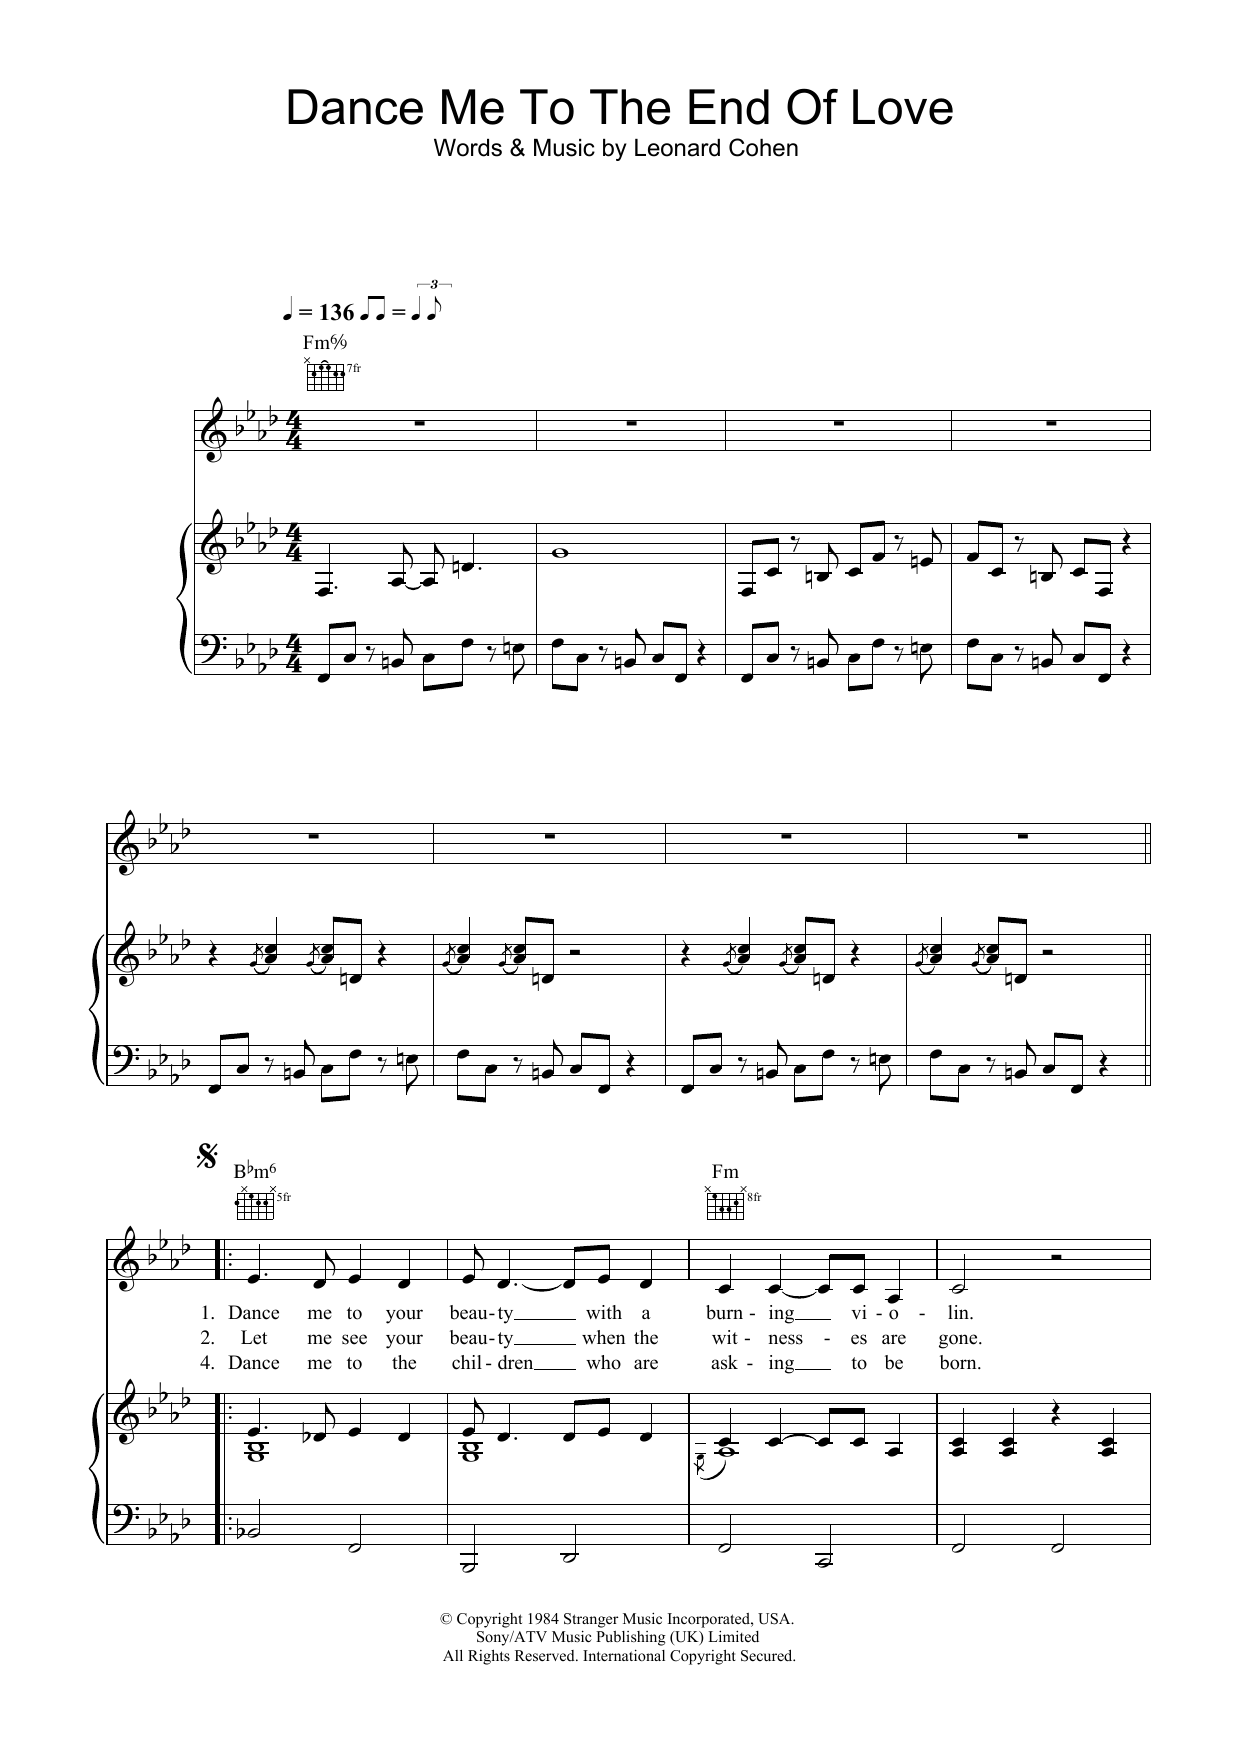 Dance Me To The End Of Love sheet music